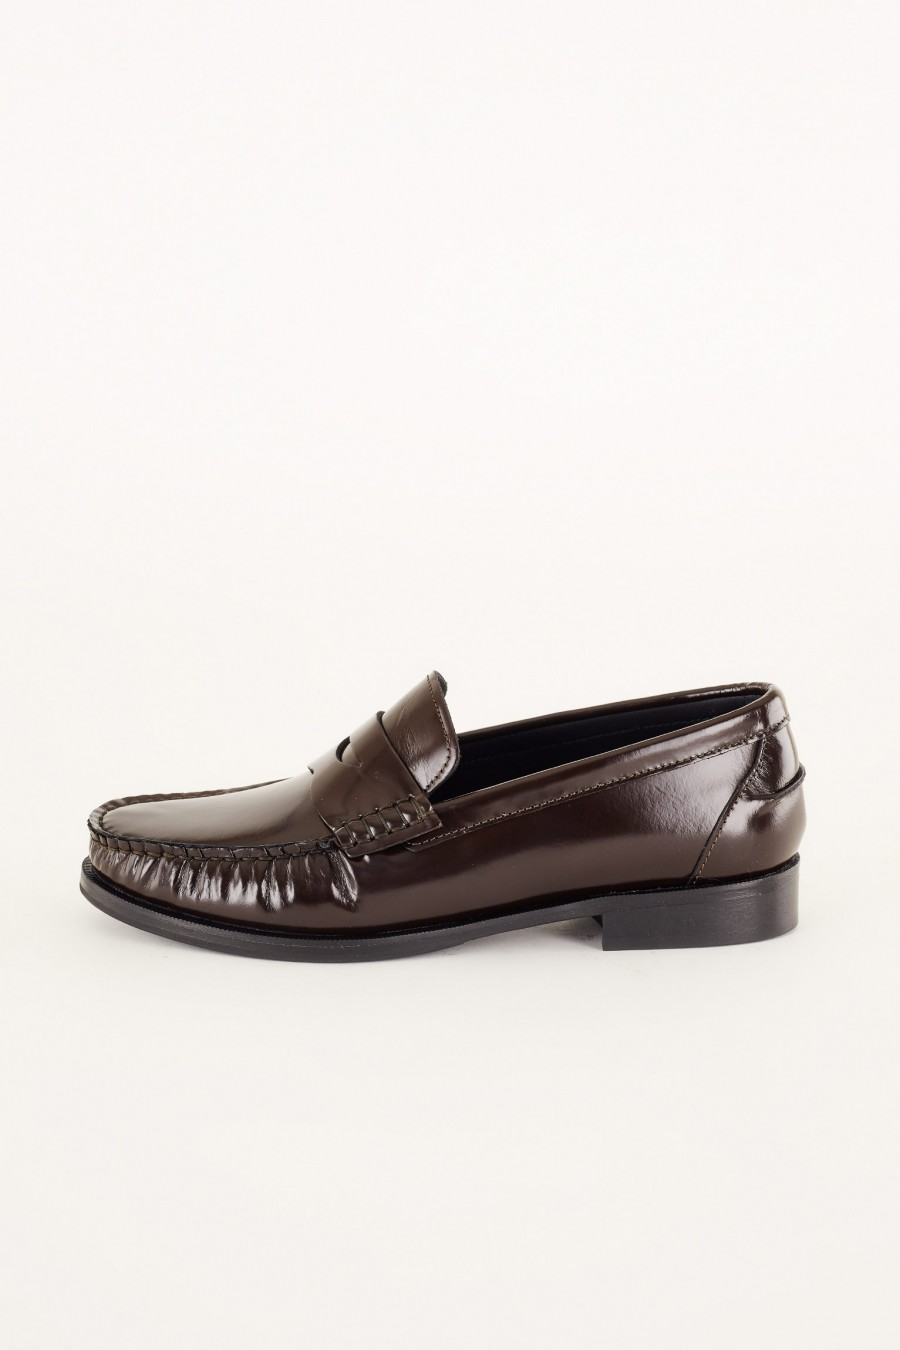 penny loafers made in italy